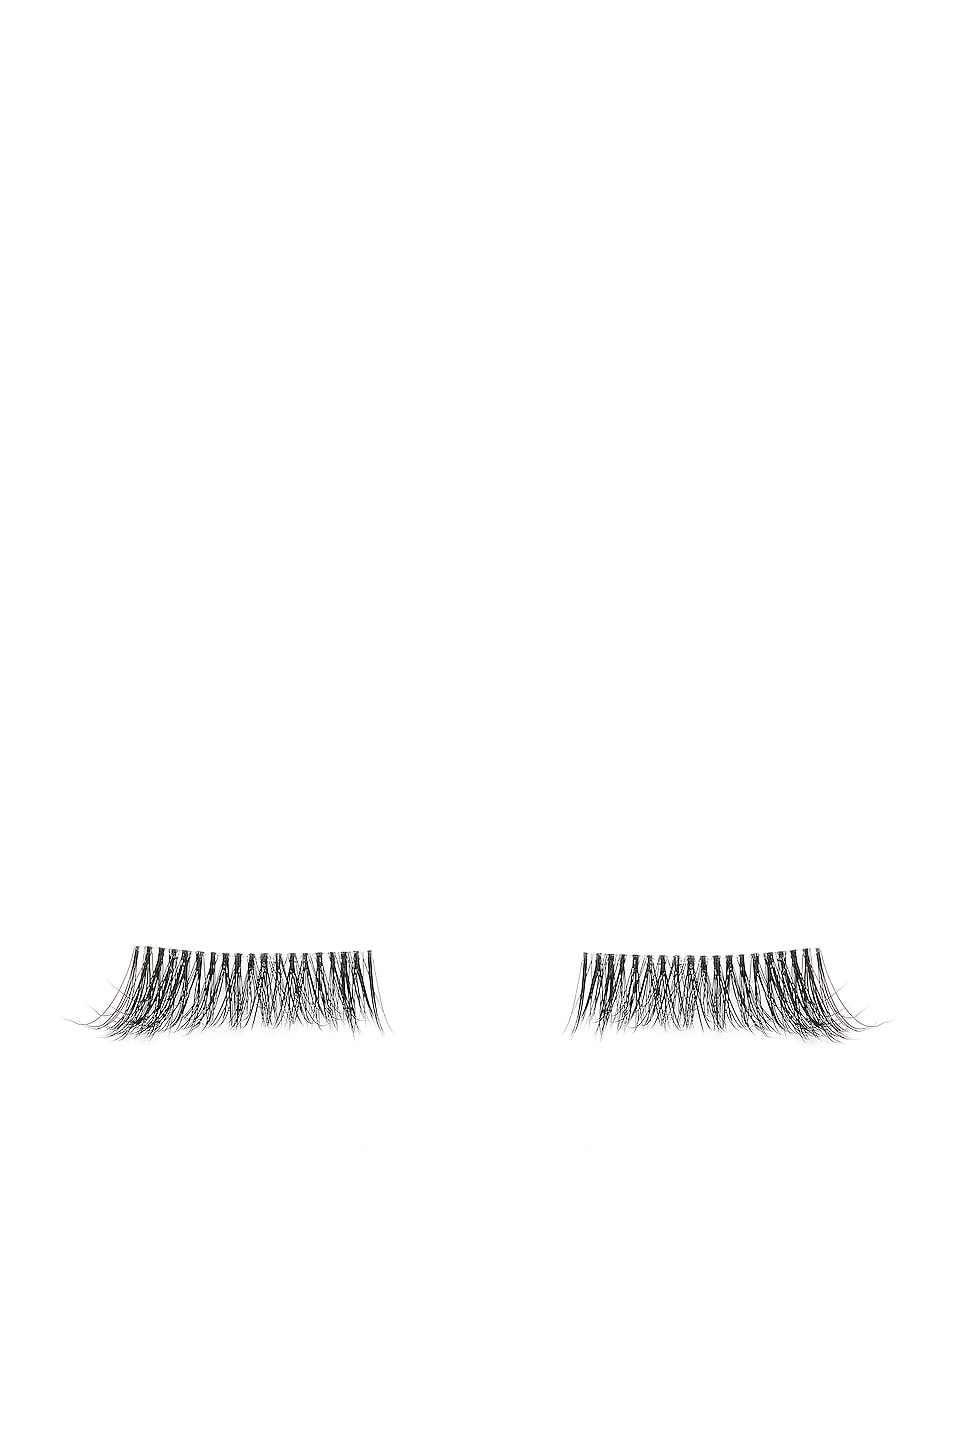 Battington Lashes PESTAÑAS POSTIZAS DEMI